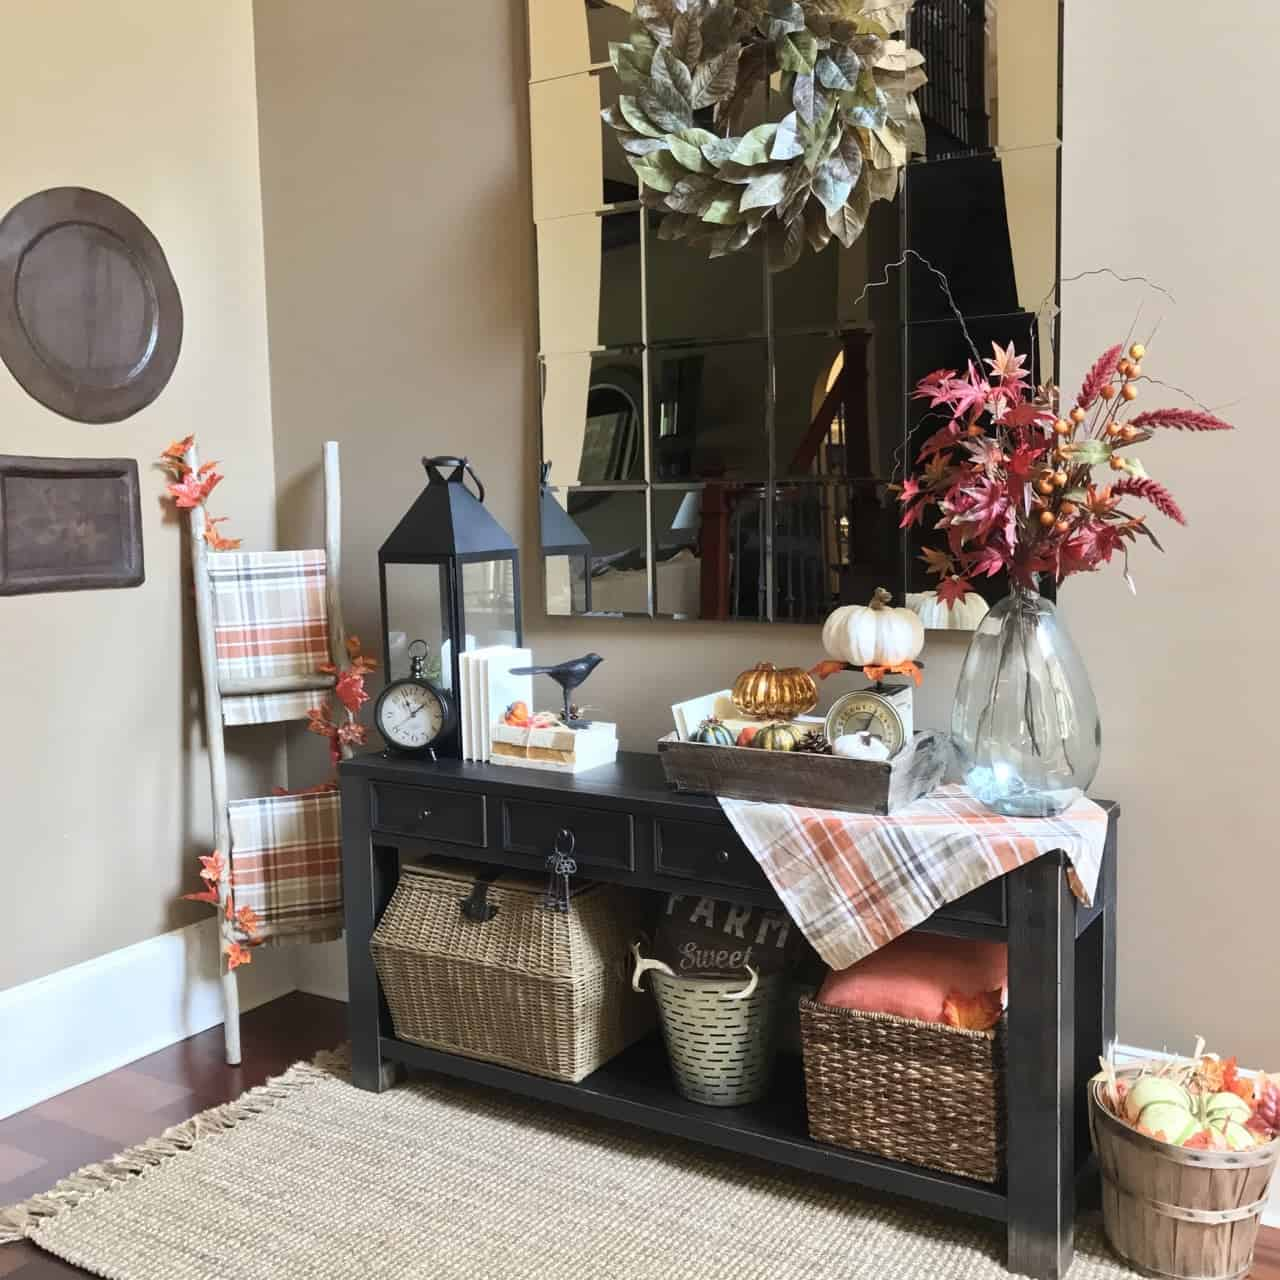 Thanksgiving Day Hosting and Decorating Ideas